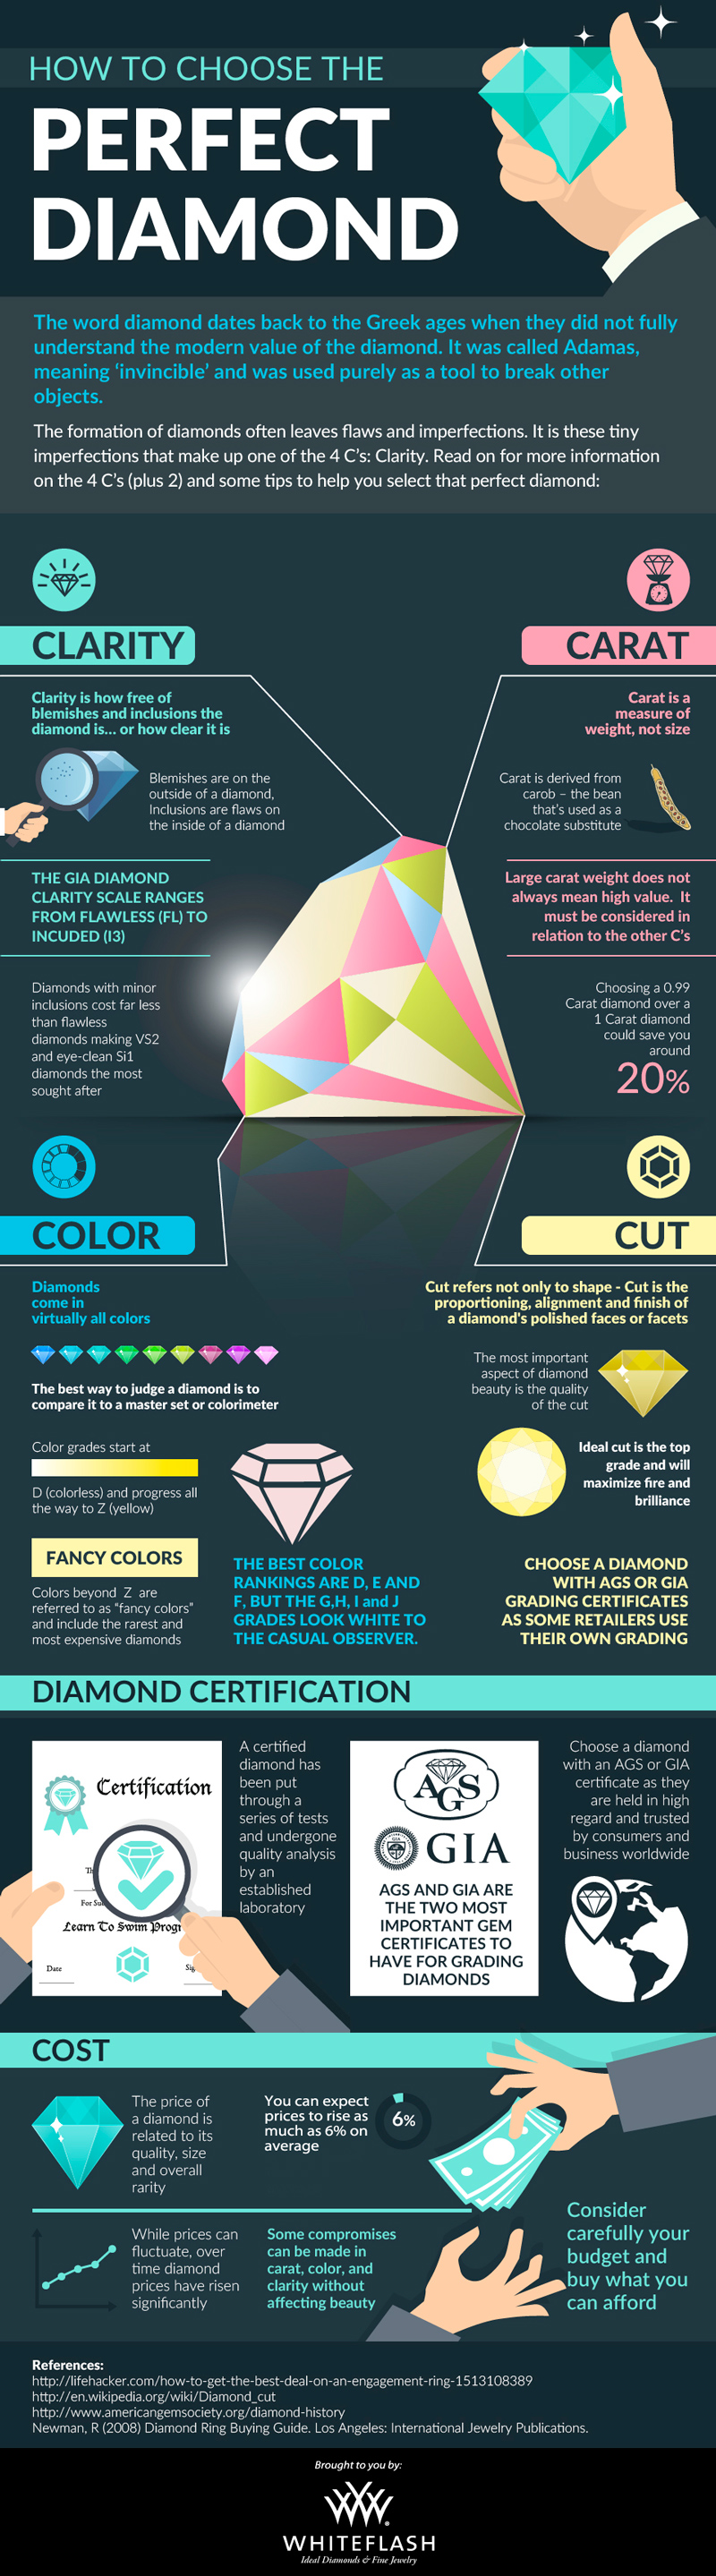 how-to-choose-the-perfect-diamond-infographic